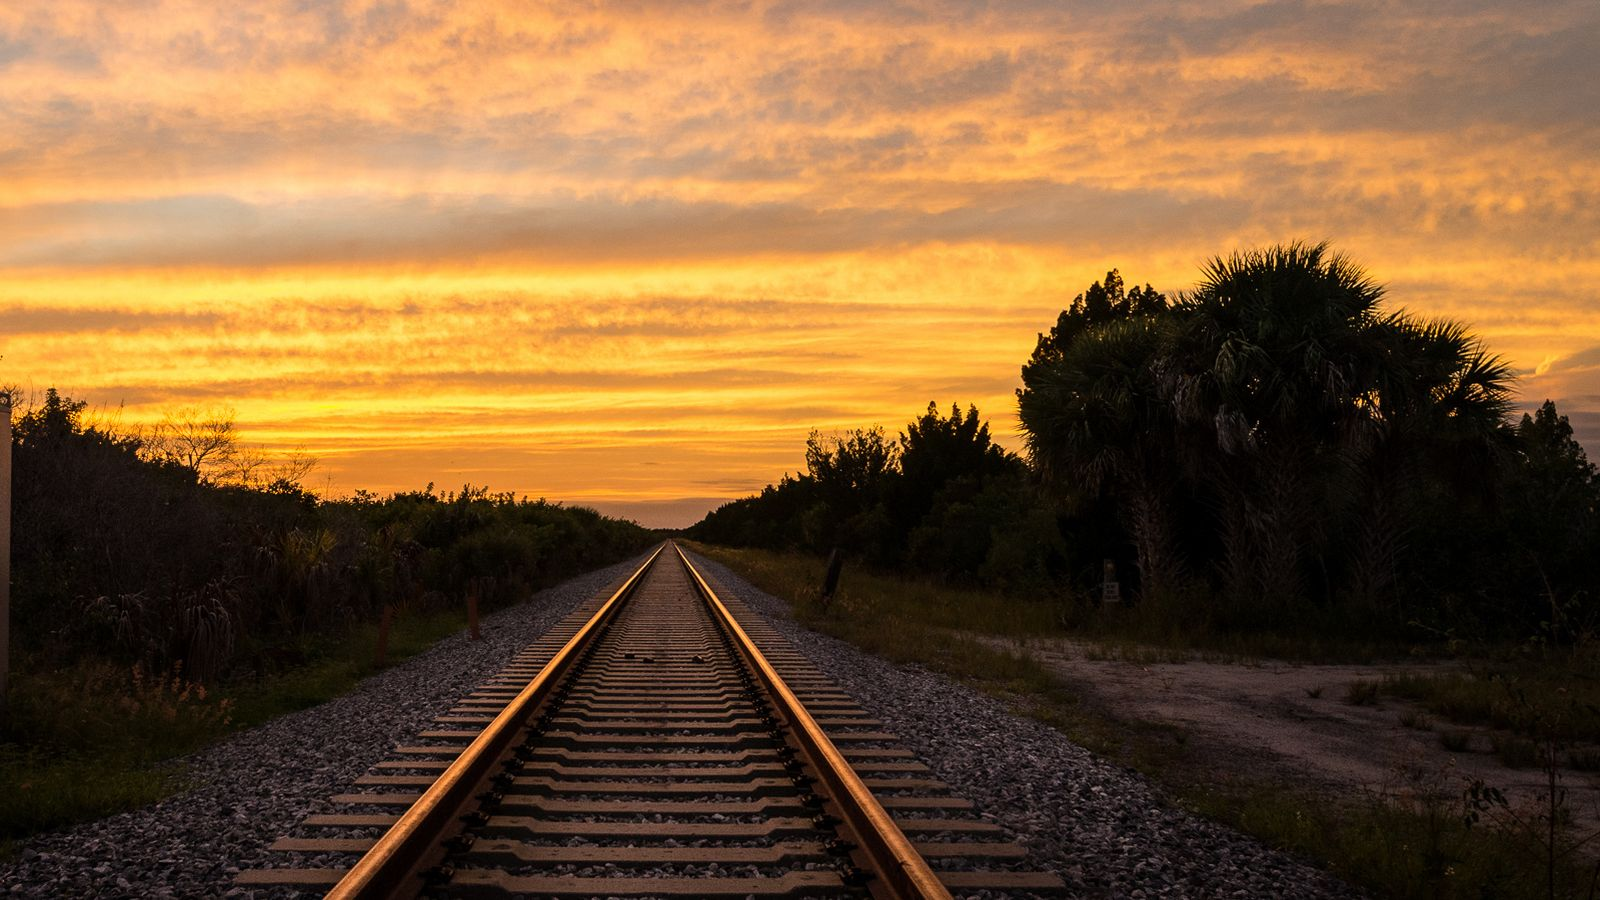 Railroad background 20 1600x900 - Wallpapers 1600x900 ...